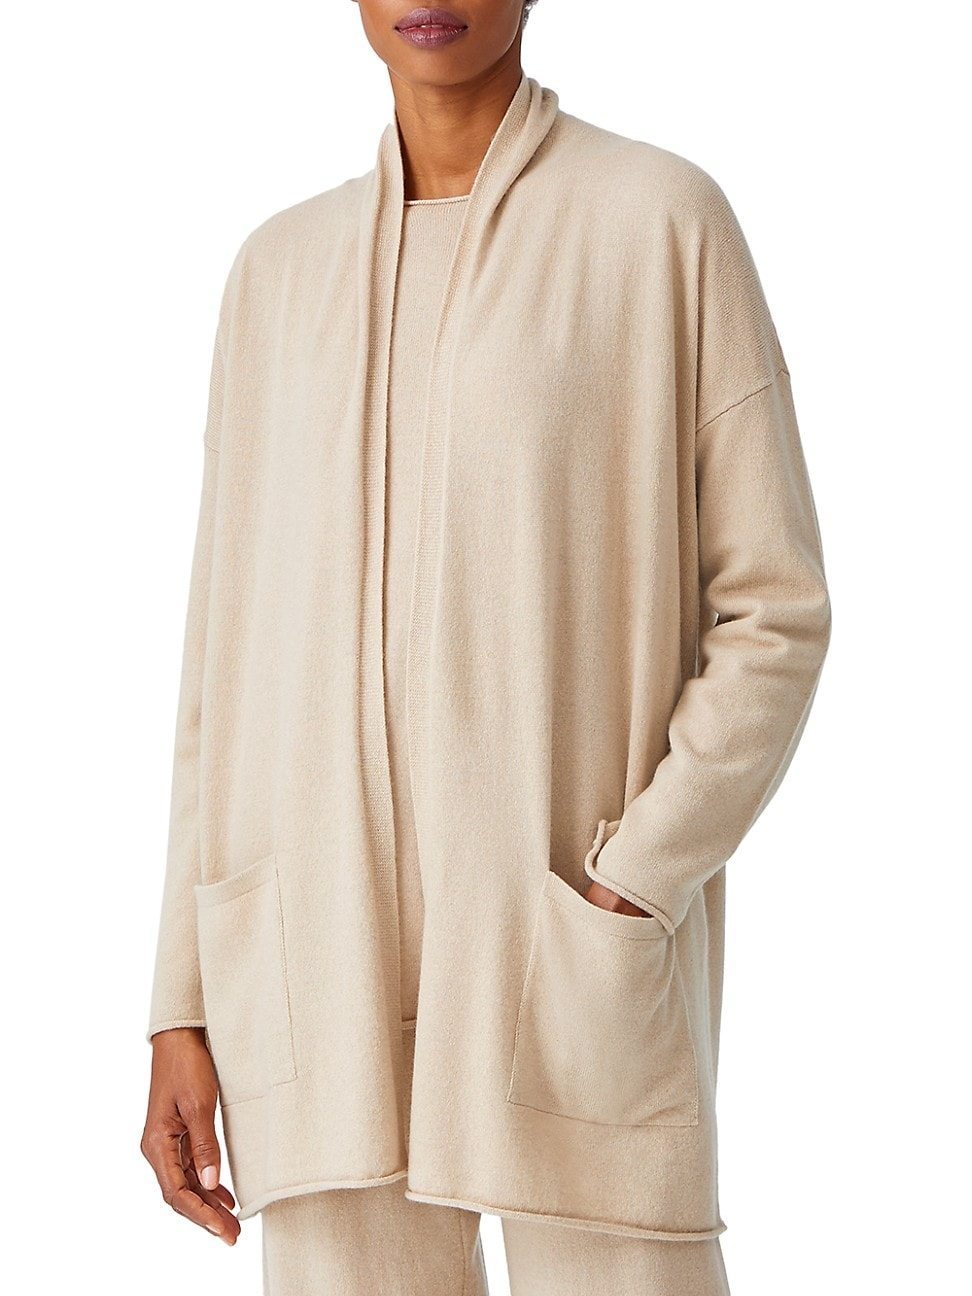 Eileen Fisher WOMEN'S CASHMERE CARDIGAN